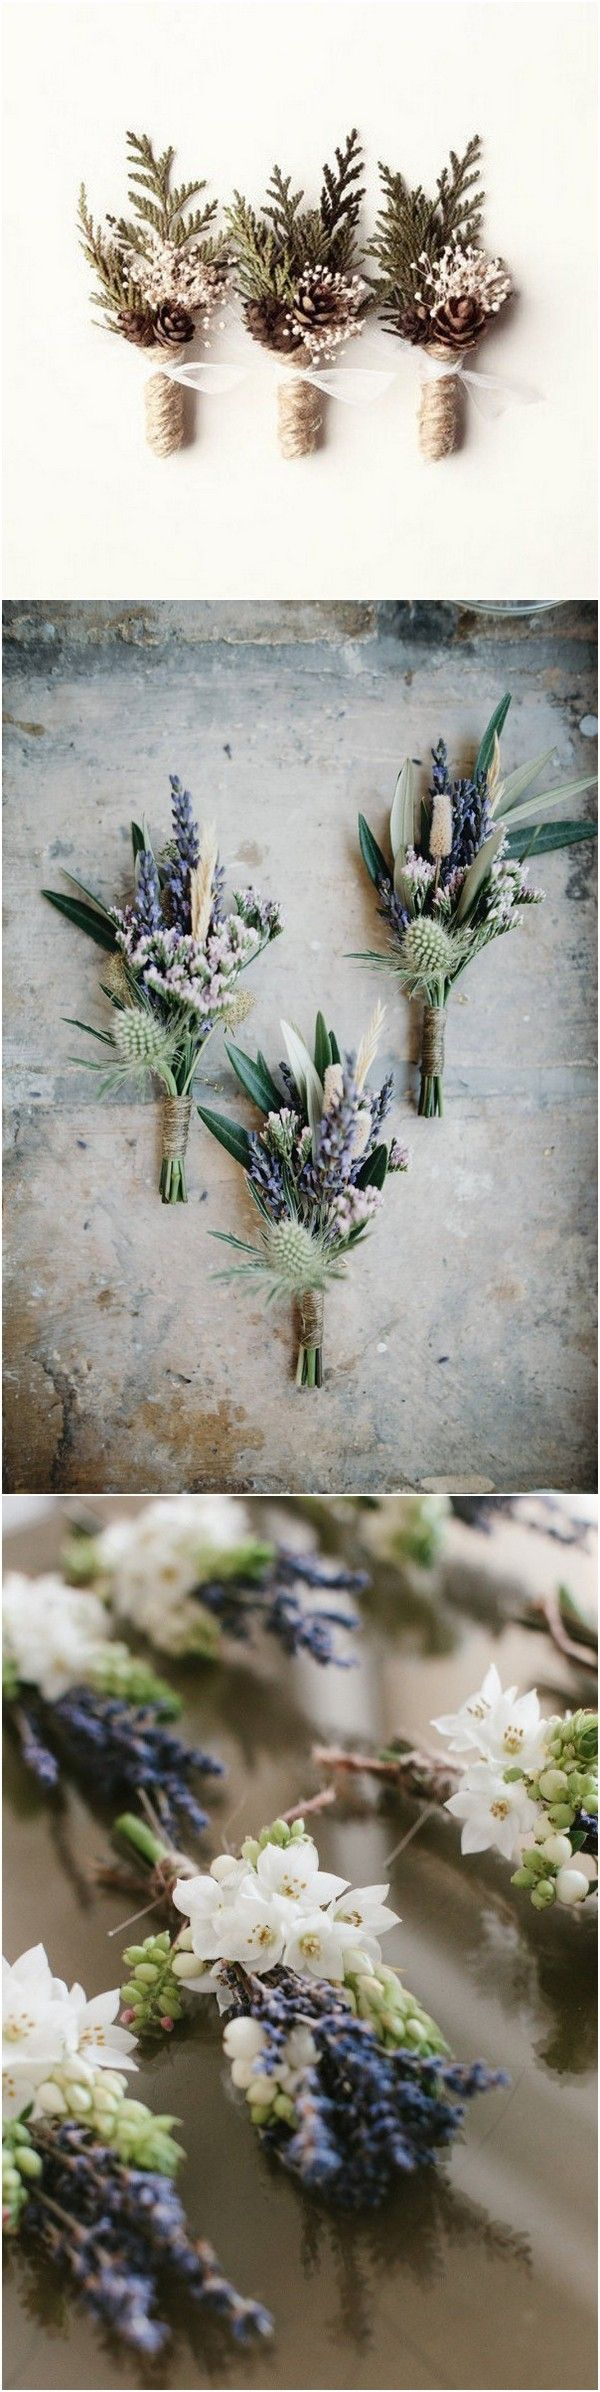 Wedding Boutonniere Ideas for Groom and Groomsmen